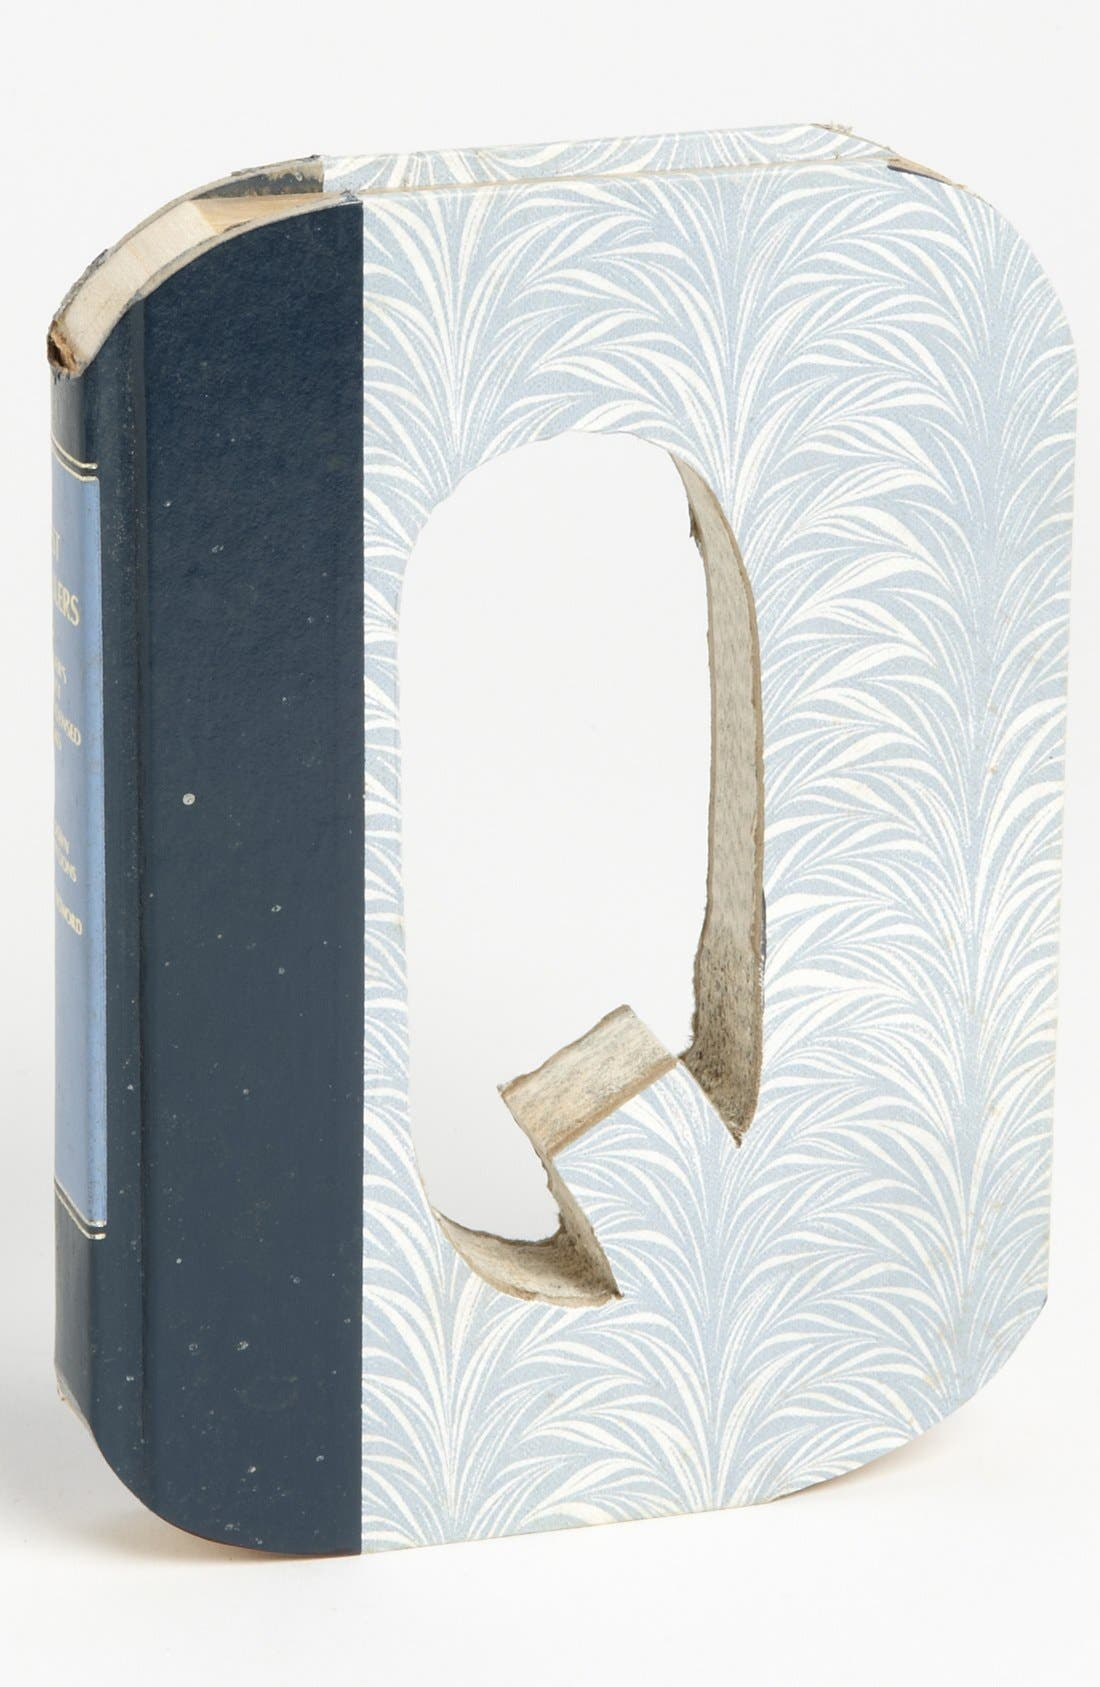 Alternate Image 1 Selected - Second Nature by Hand 'One of a Kind Letter' Hand-Carved Recycled Book Shelf Art